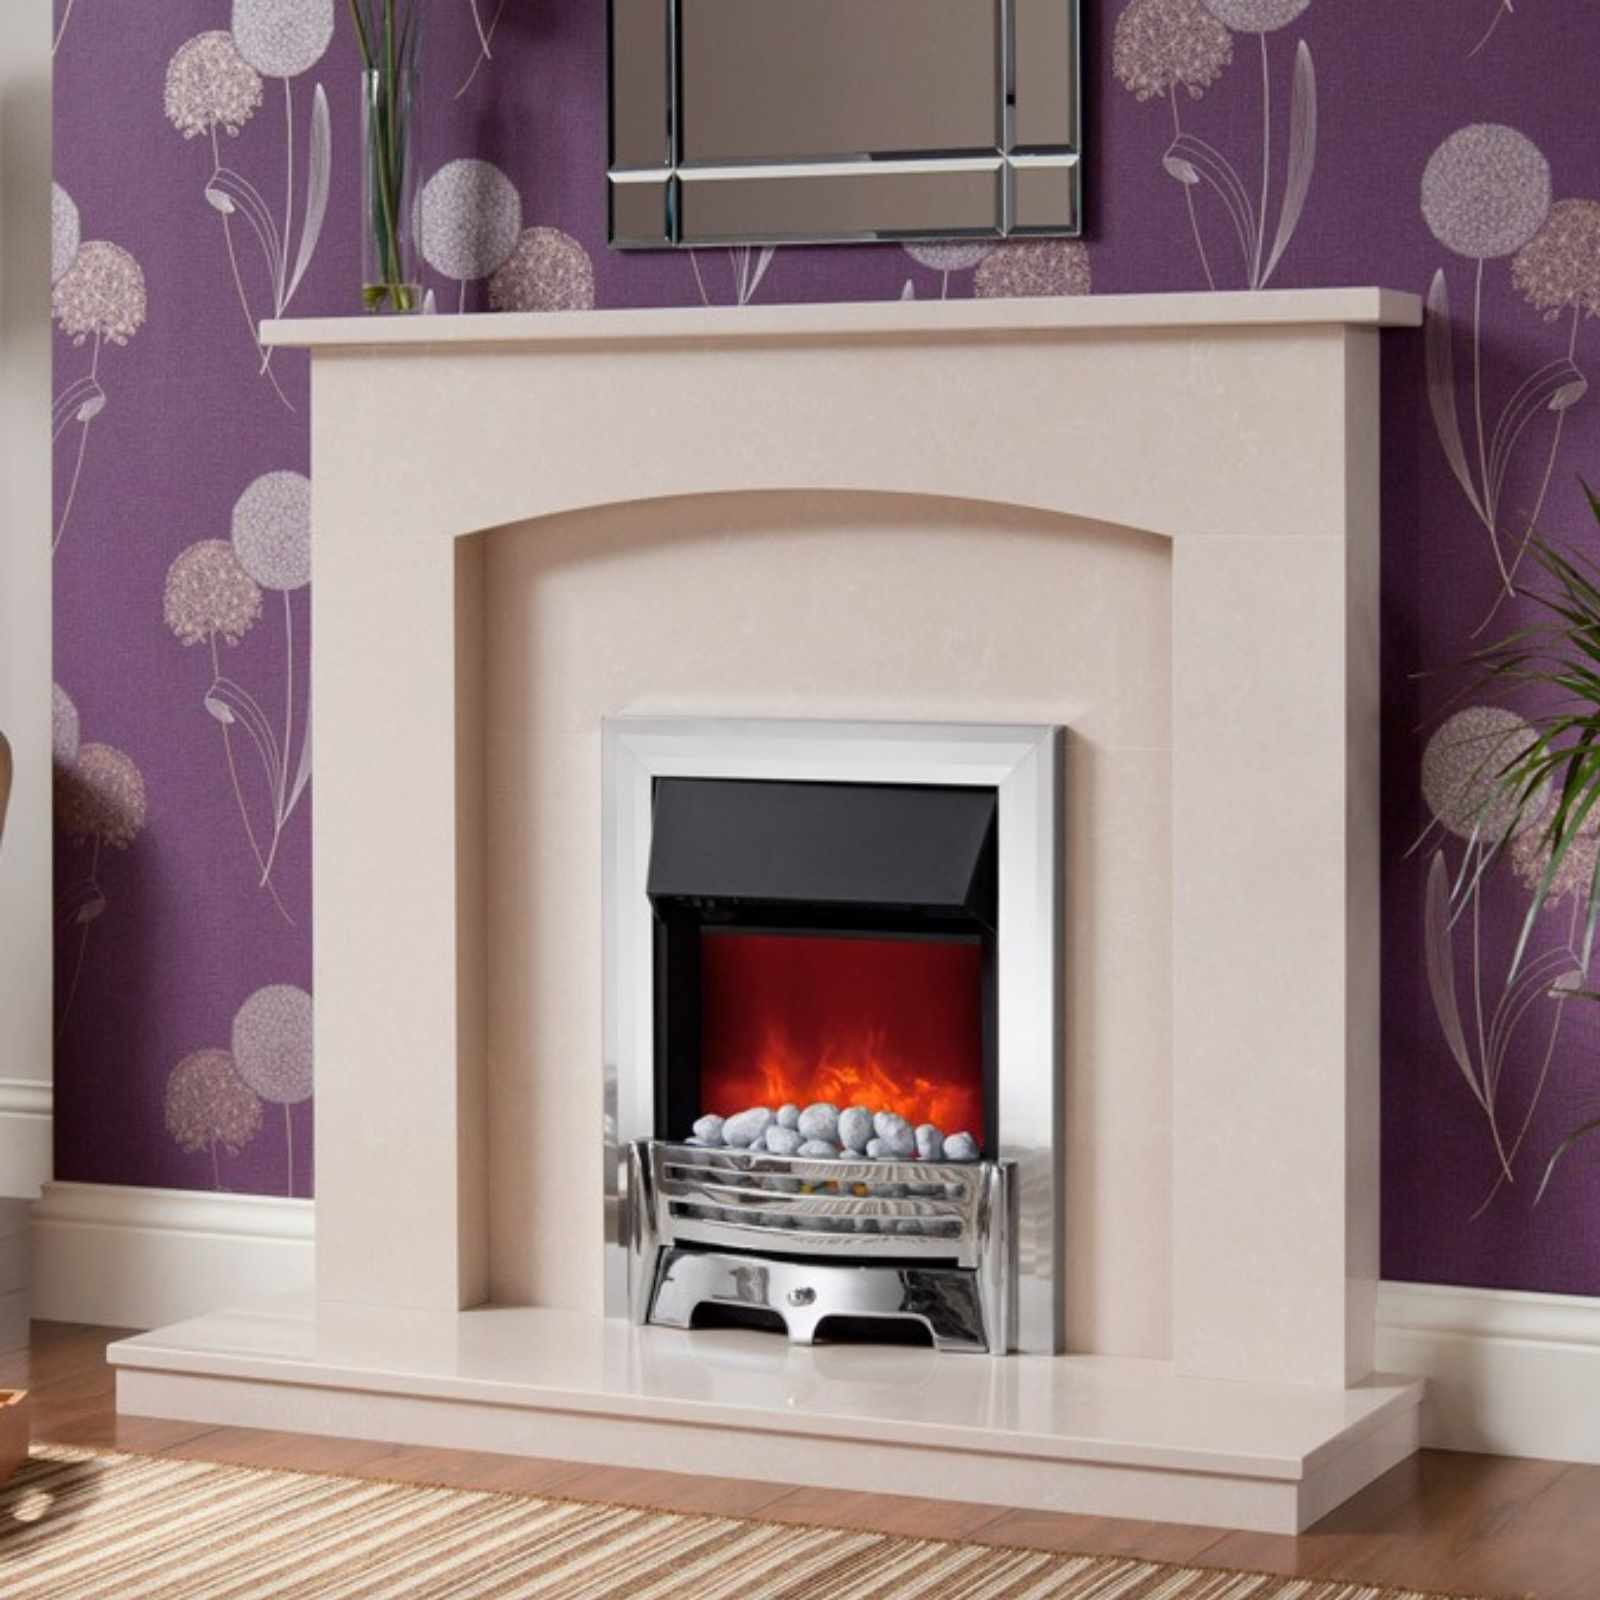 Fireplaces 4 Life have been in the fire industry for a lot of years and can give you advise on almost any fire or fireplace. Call now on 01274 871010 and speak to one of our expert team members for further information. product